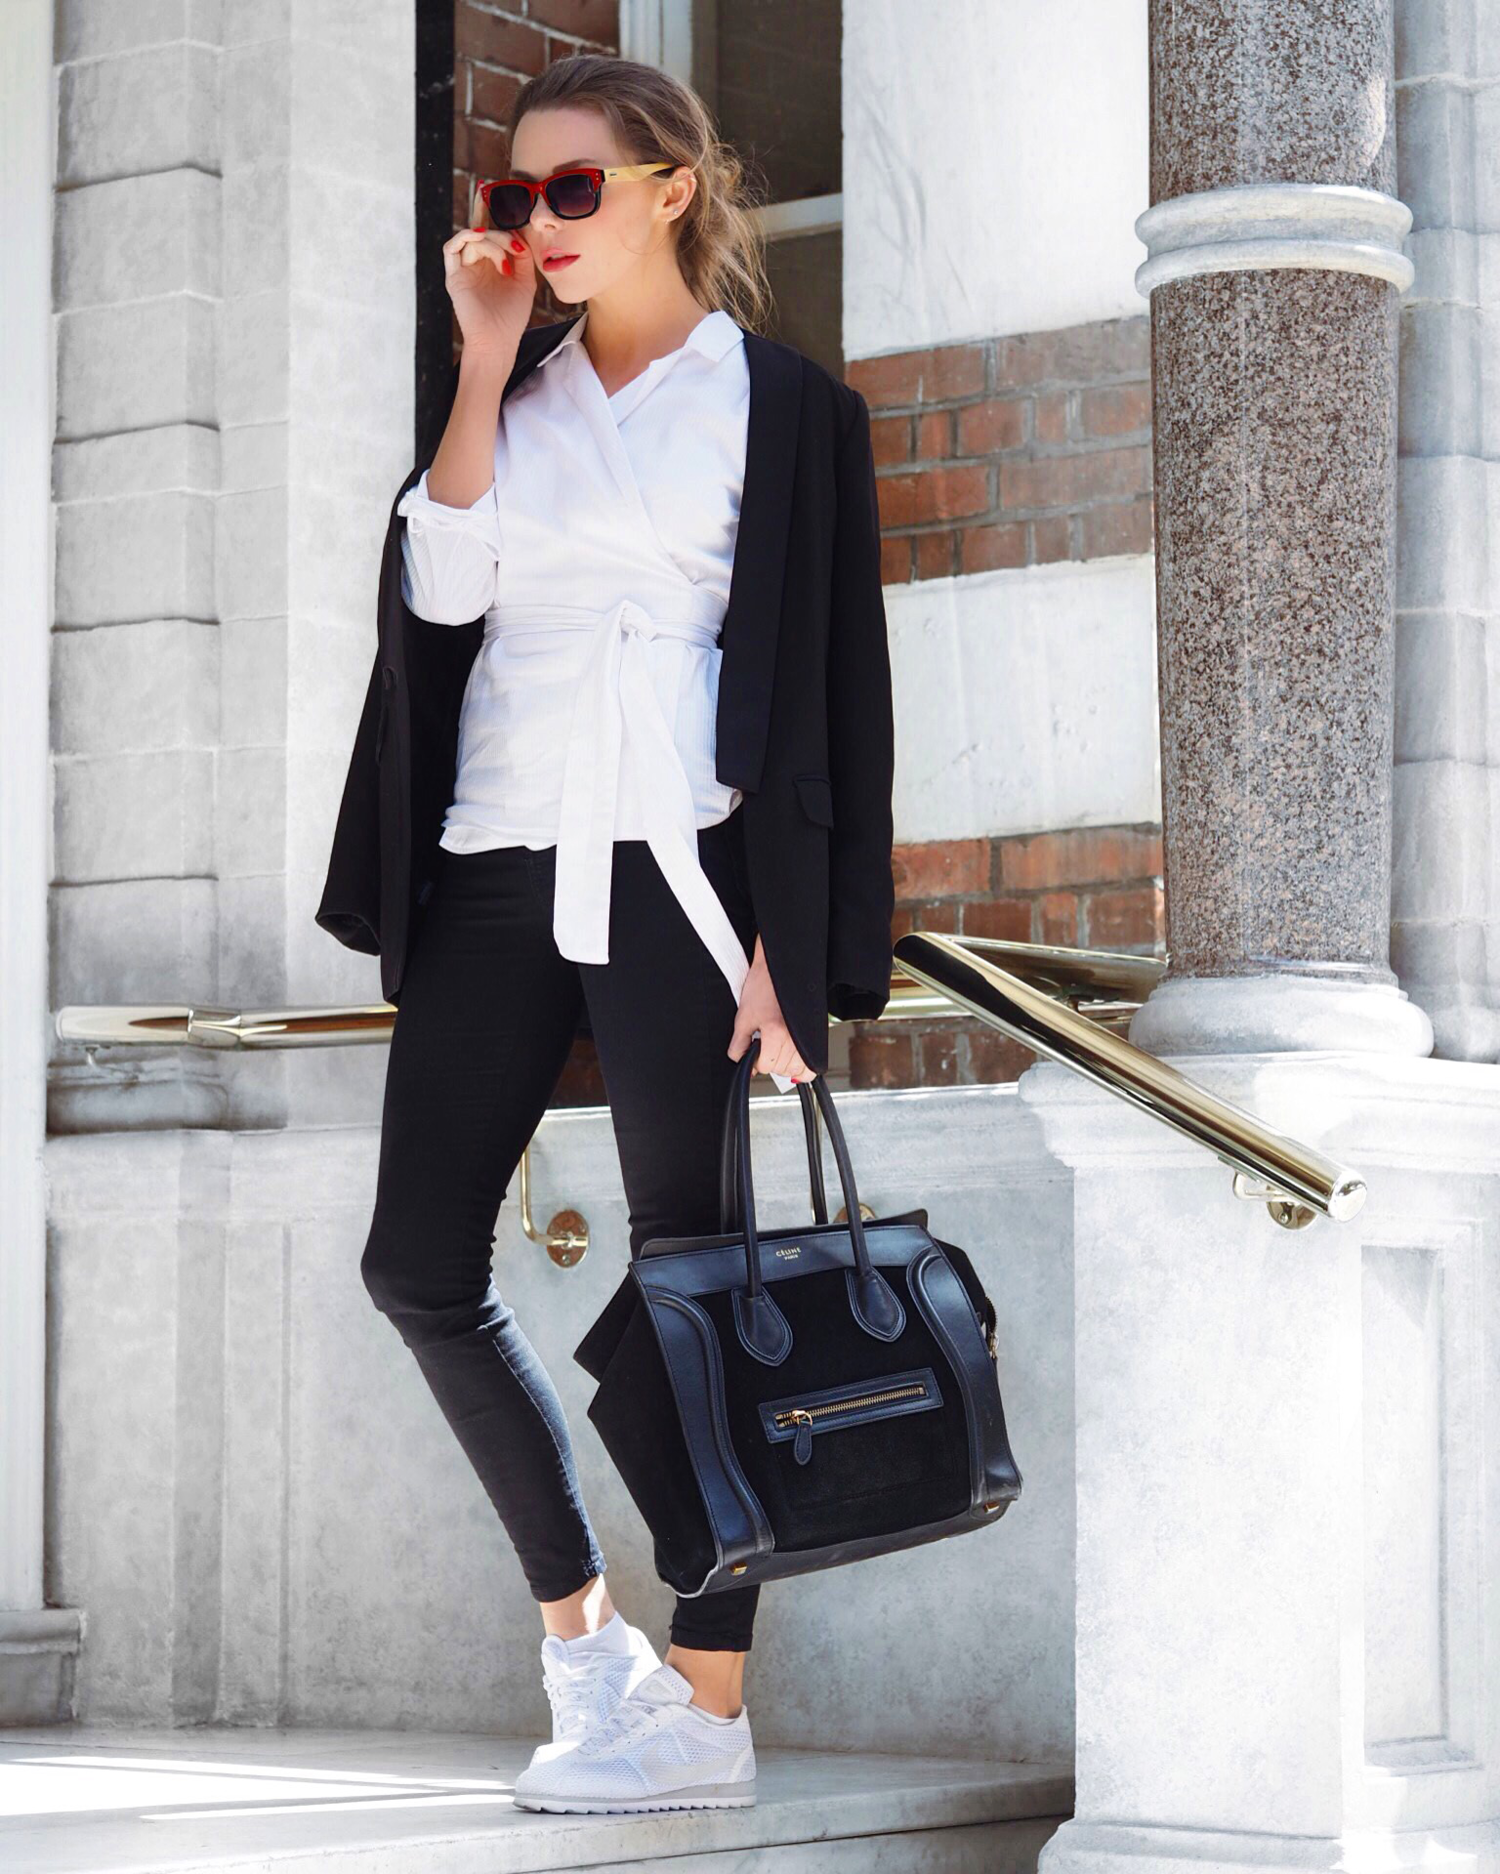 CITY DRESSING OFFICE WEAR WHAT TO WEAR TO WORK LAURA BLAIR LONDON FASHION GIRL